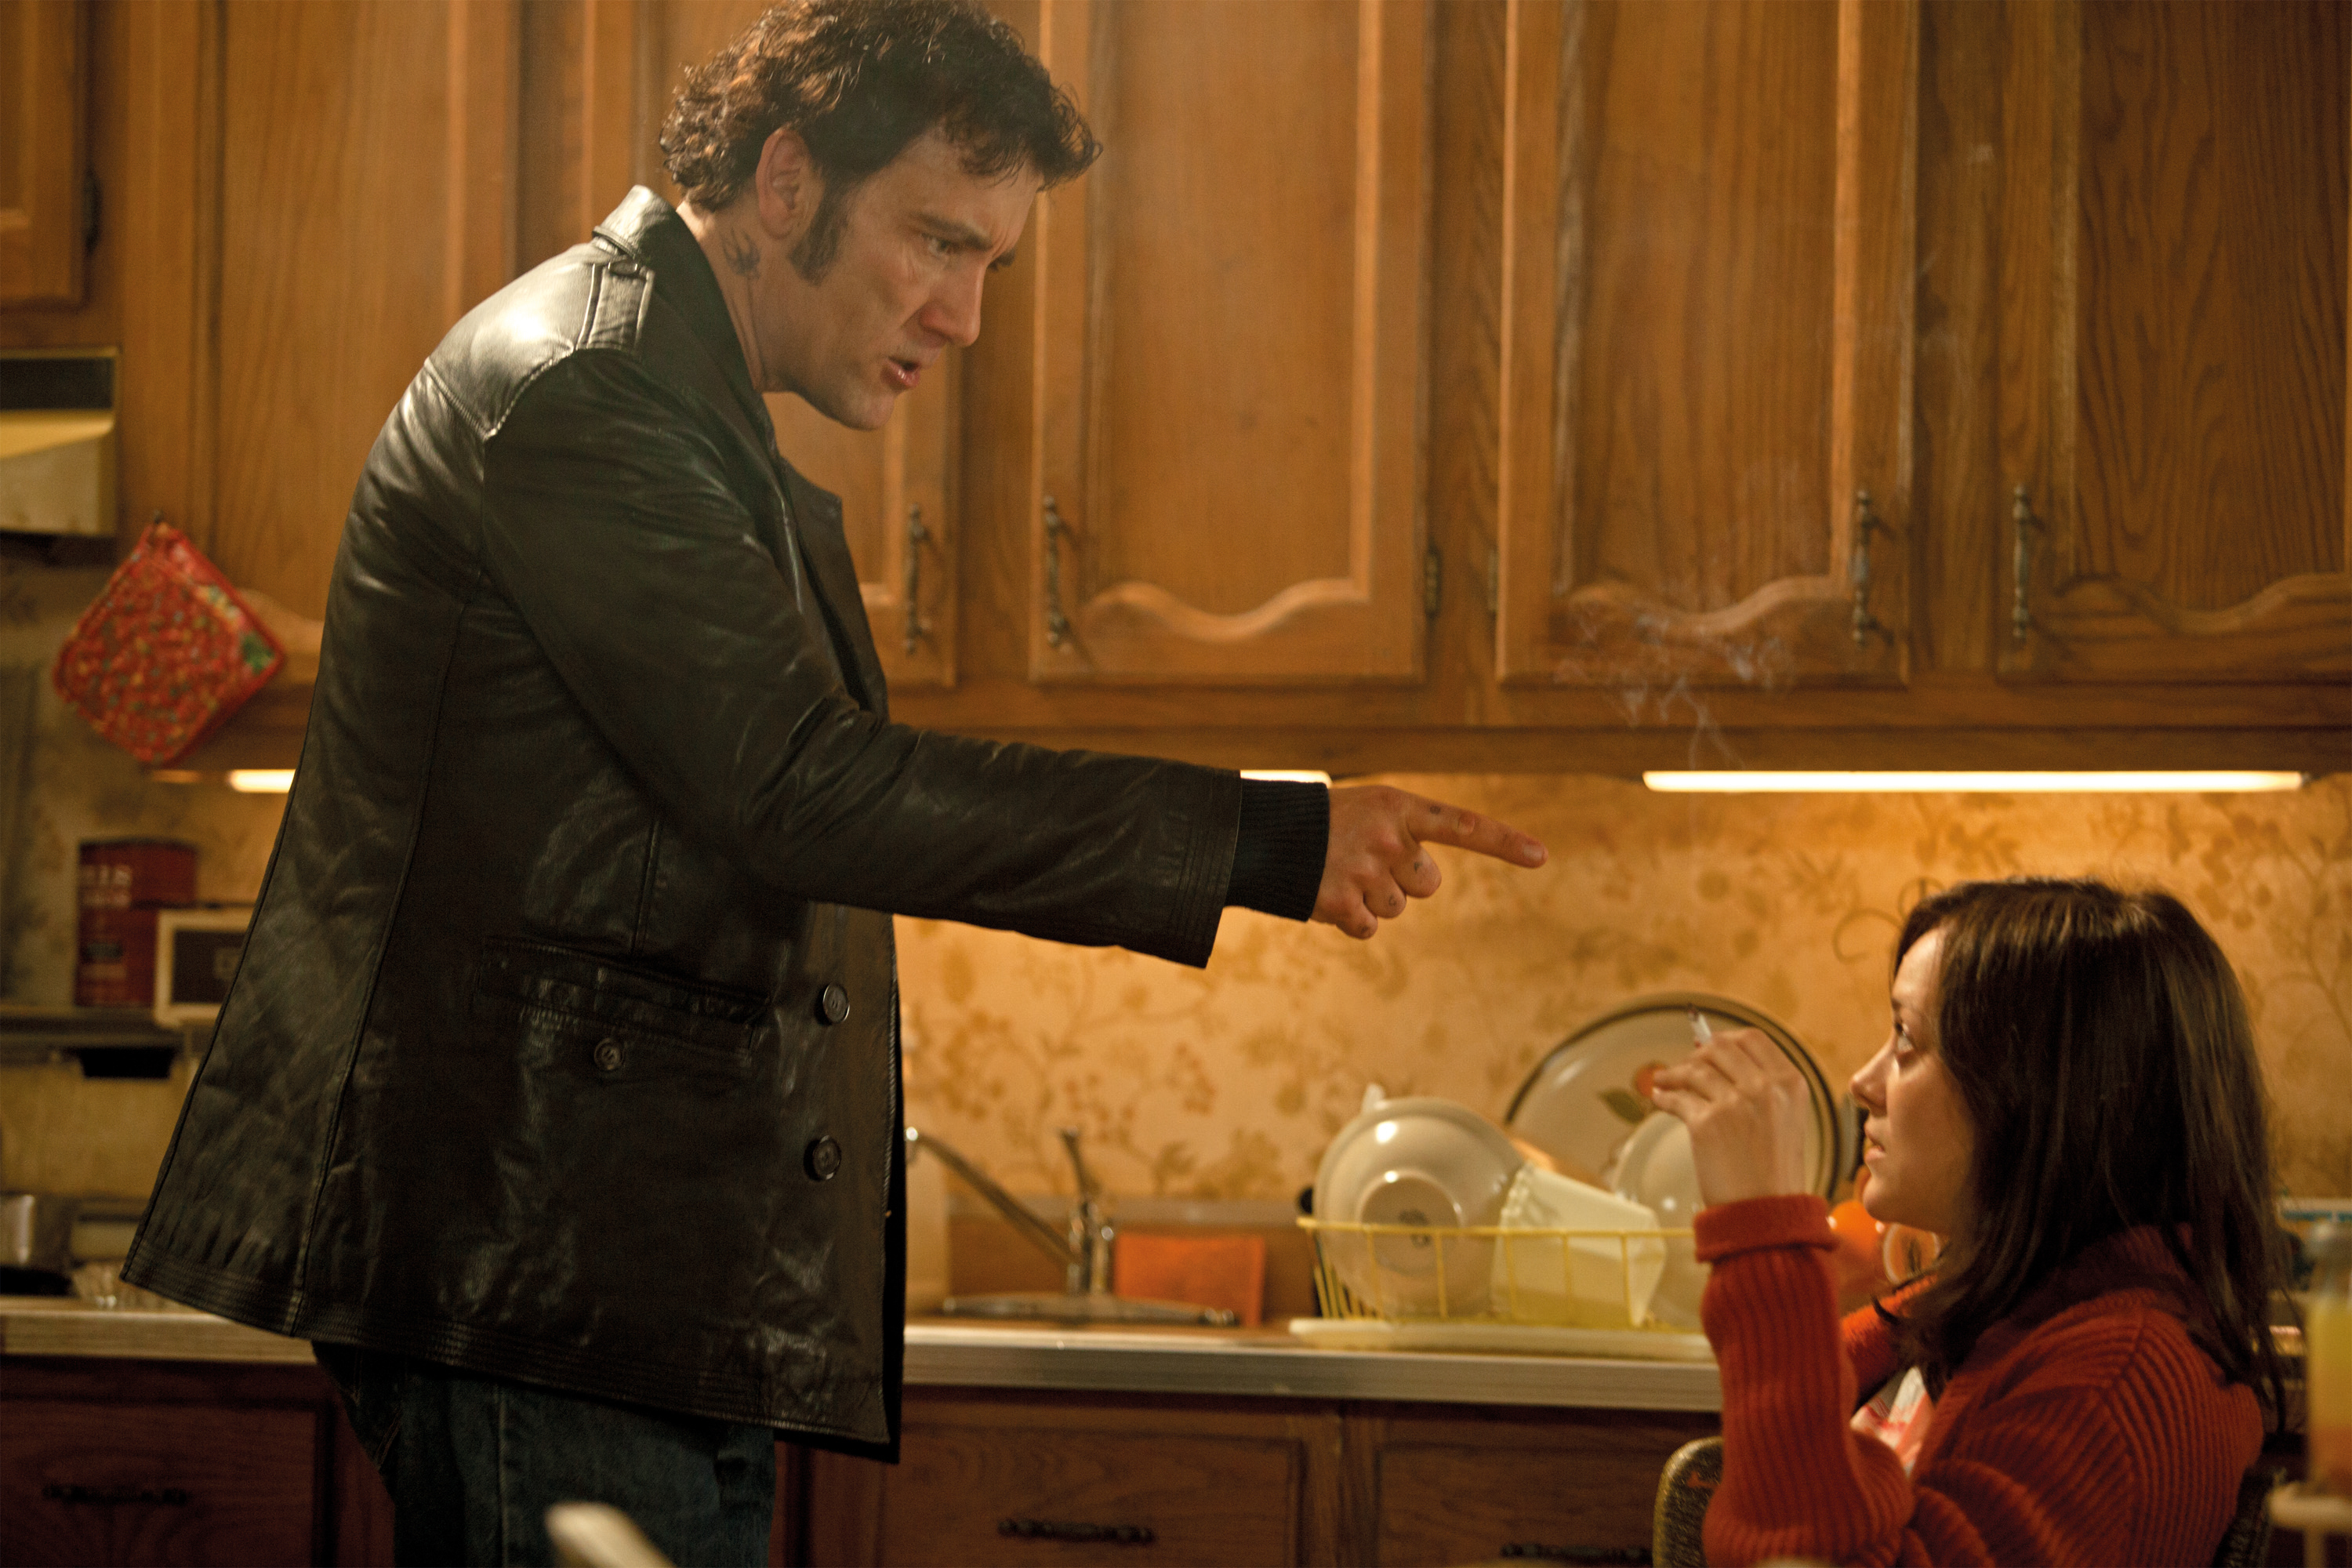 blood ties clive owen marion cotillard